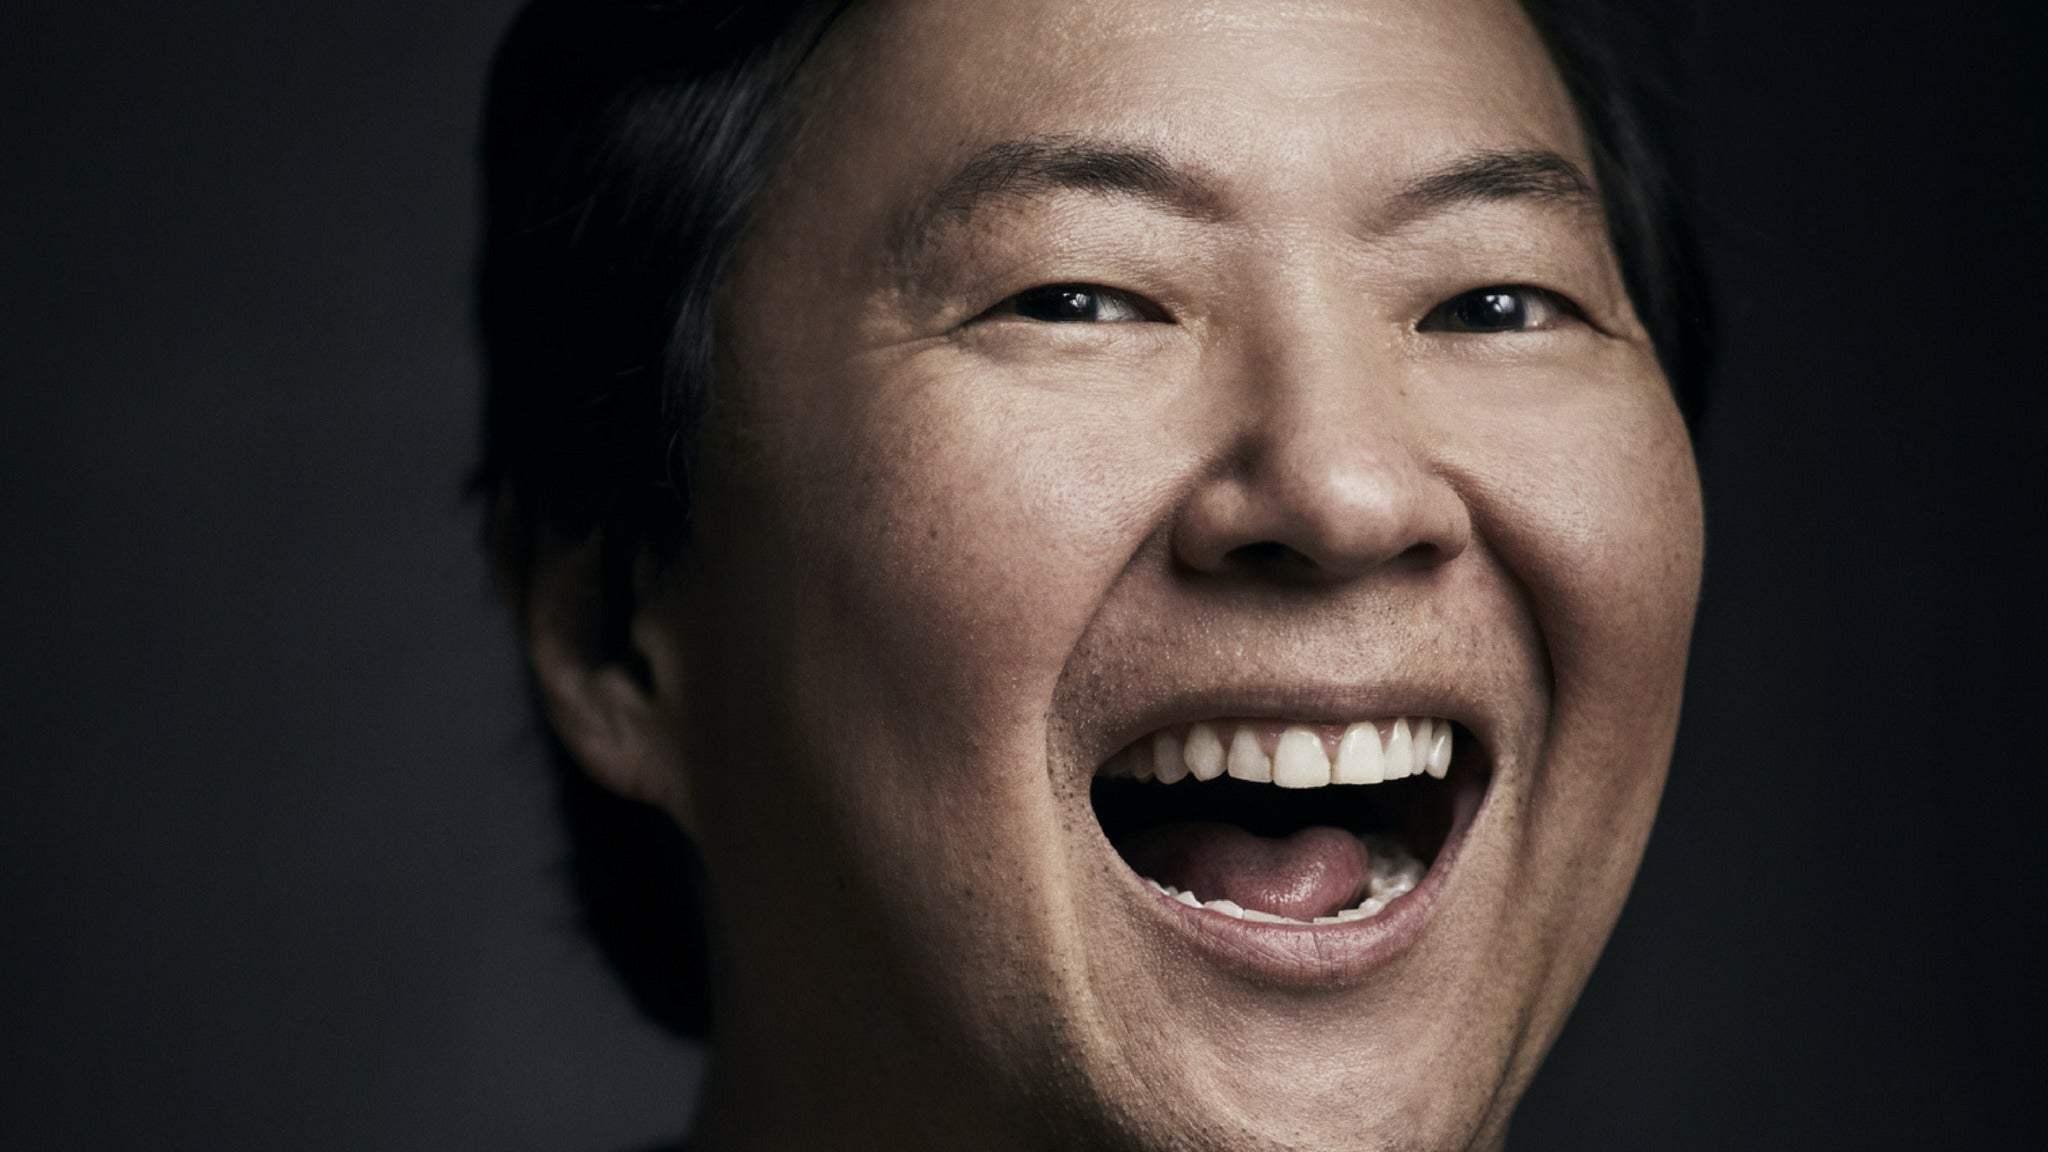 Ken Jeong at Music Box at the Borgata